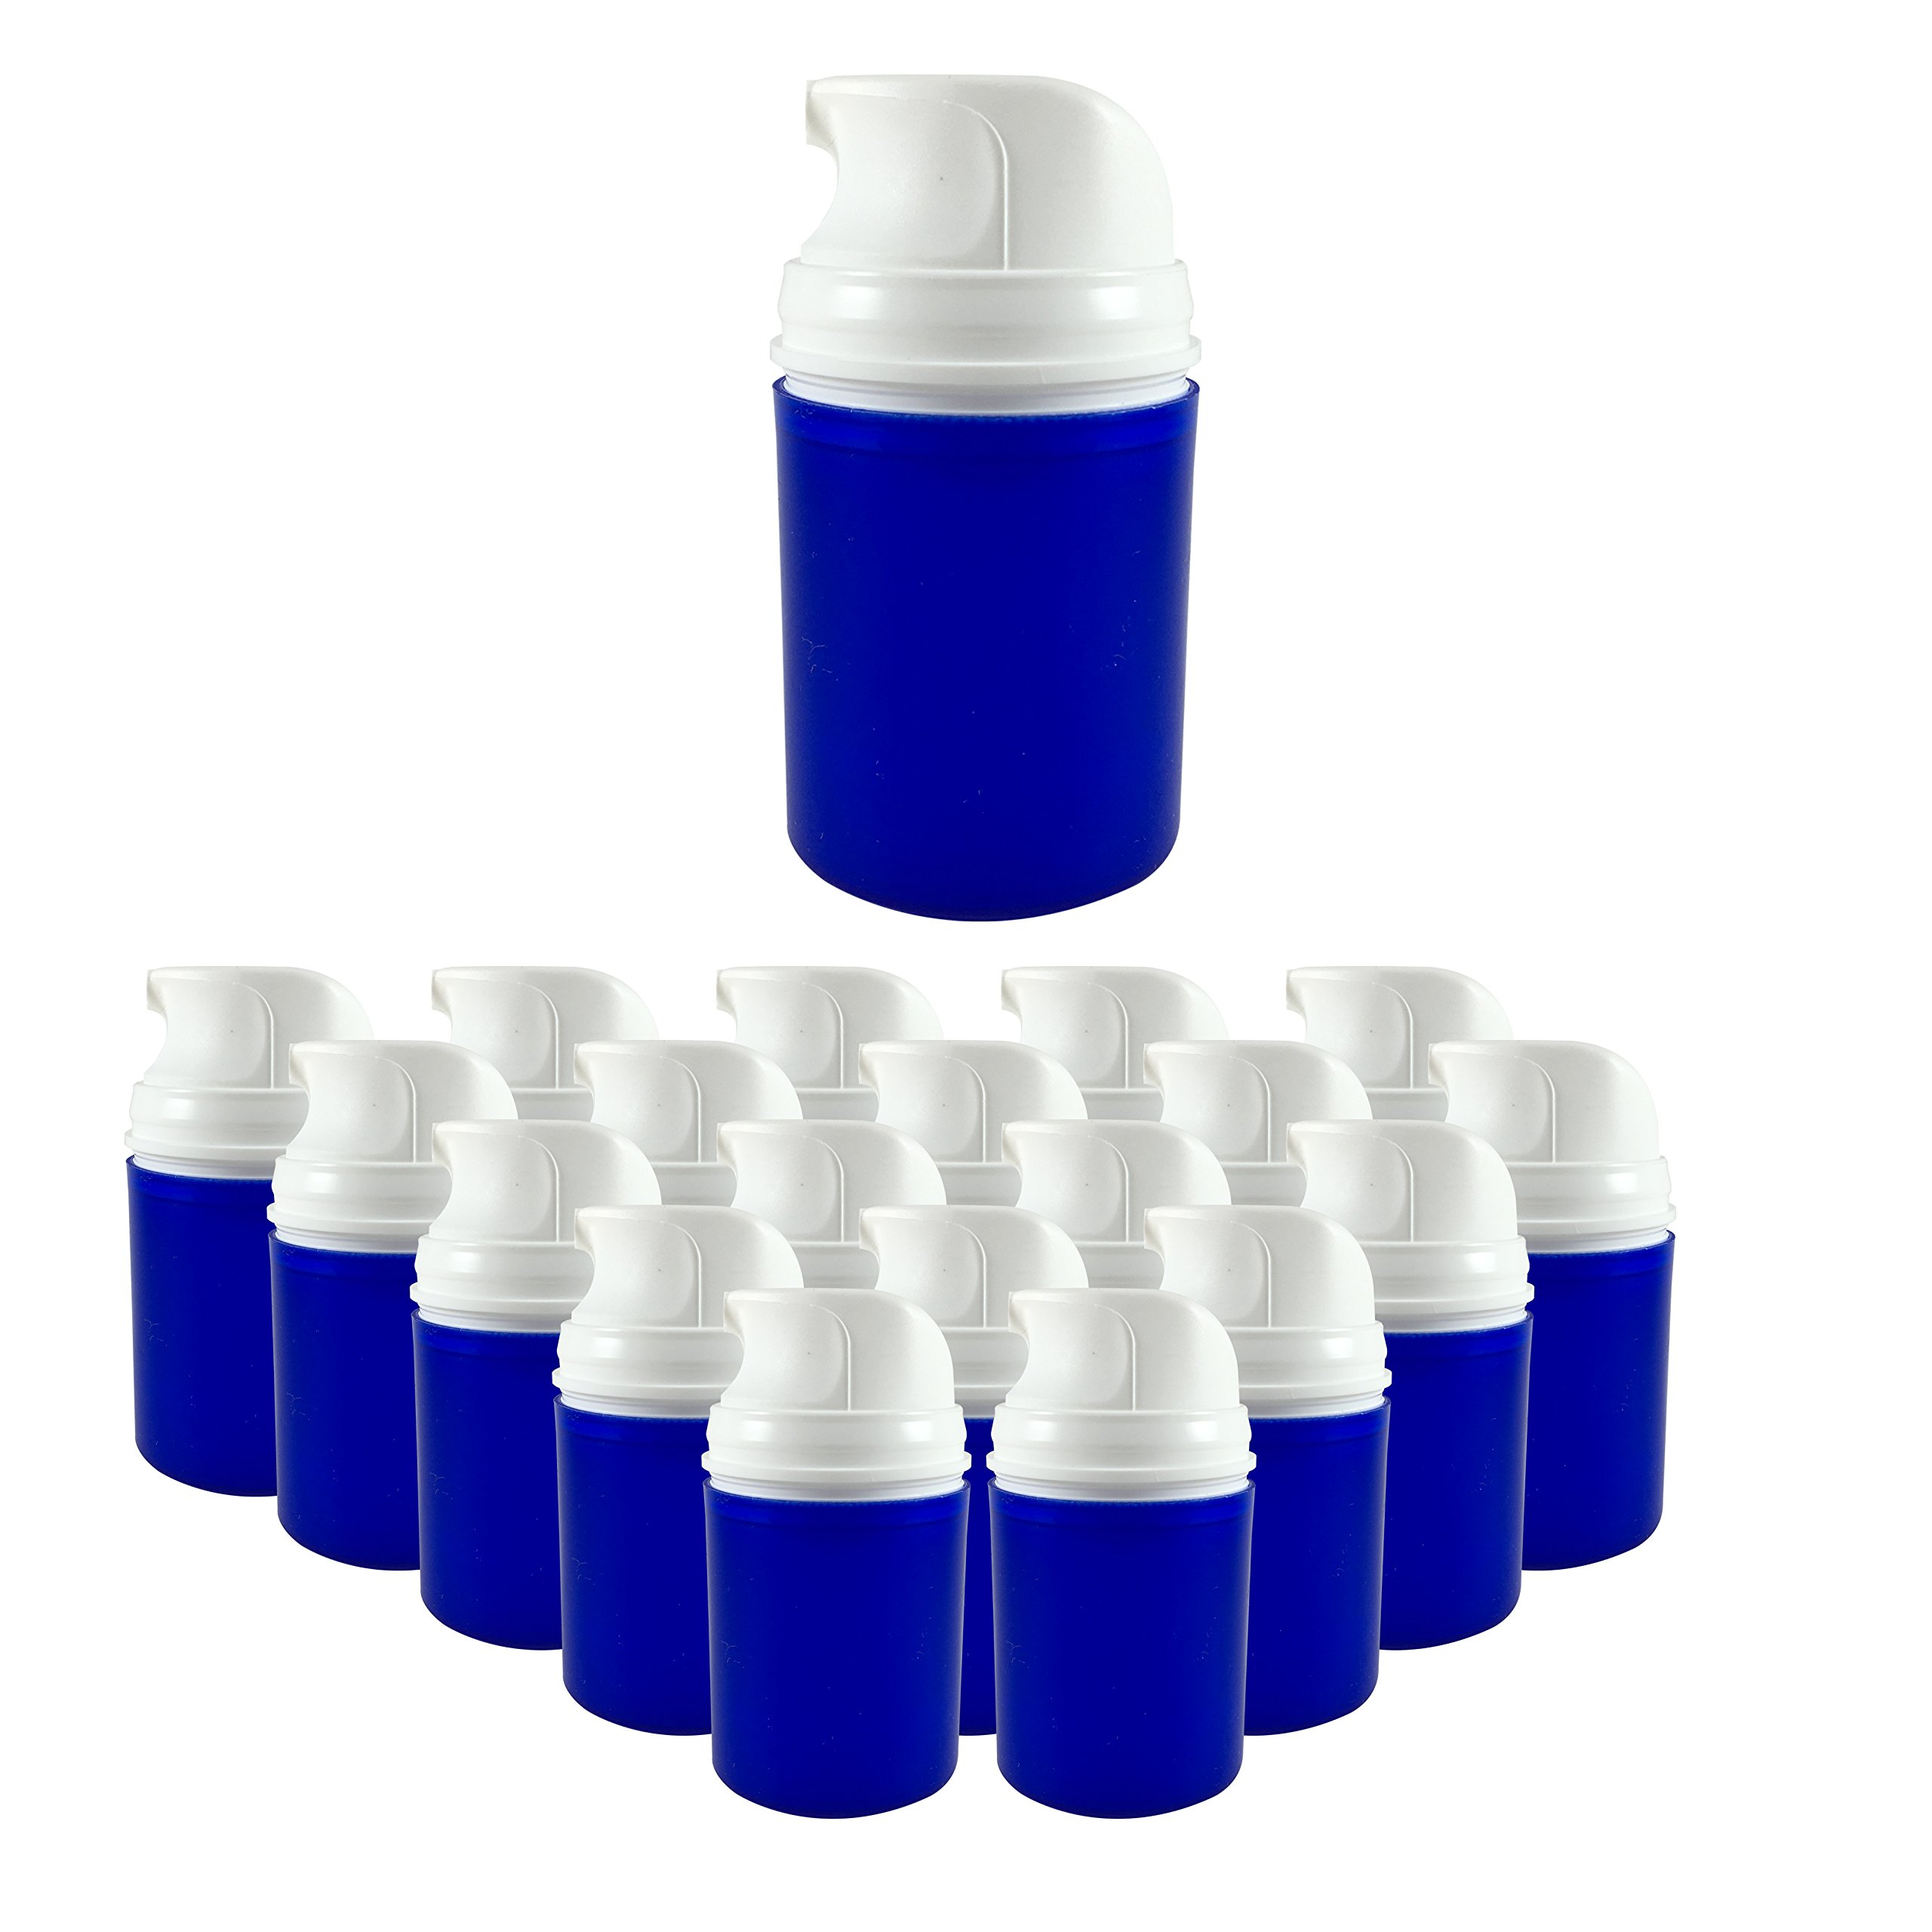 PharmaPump Airless Pump Bottles 50mL - 20 Pack - Blue Bottle With White Engine by PharmaPump